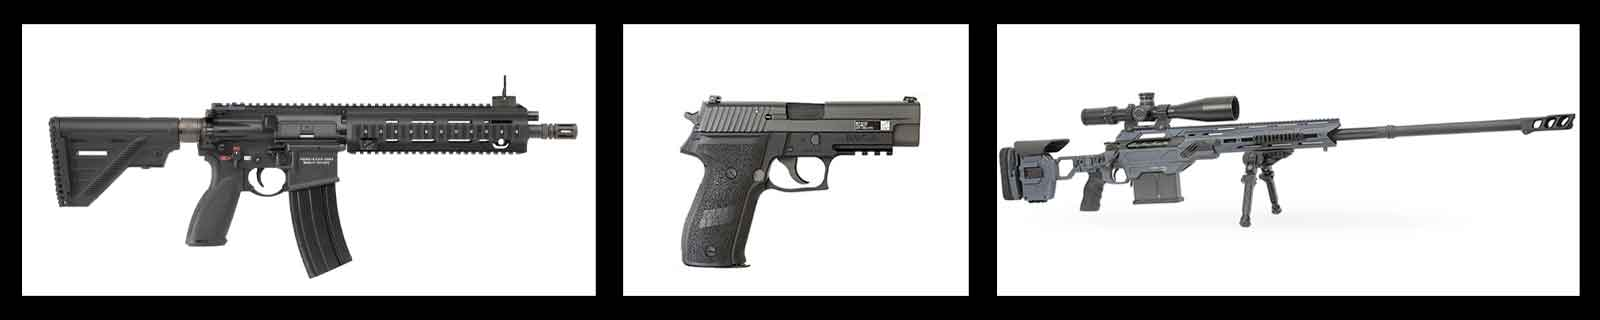 Shop for In Stock Firearms and More at TexasStarArsenal.com